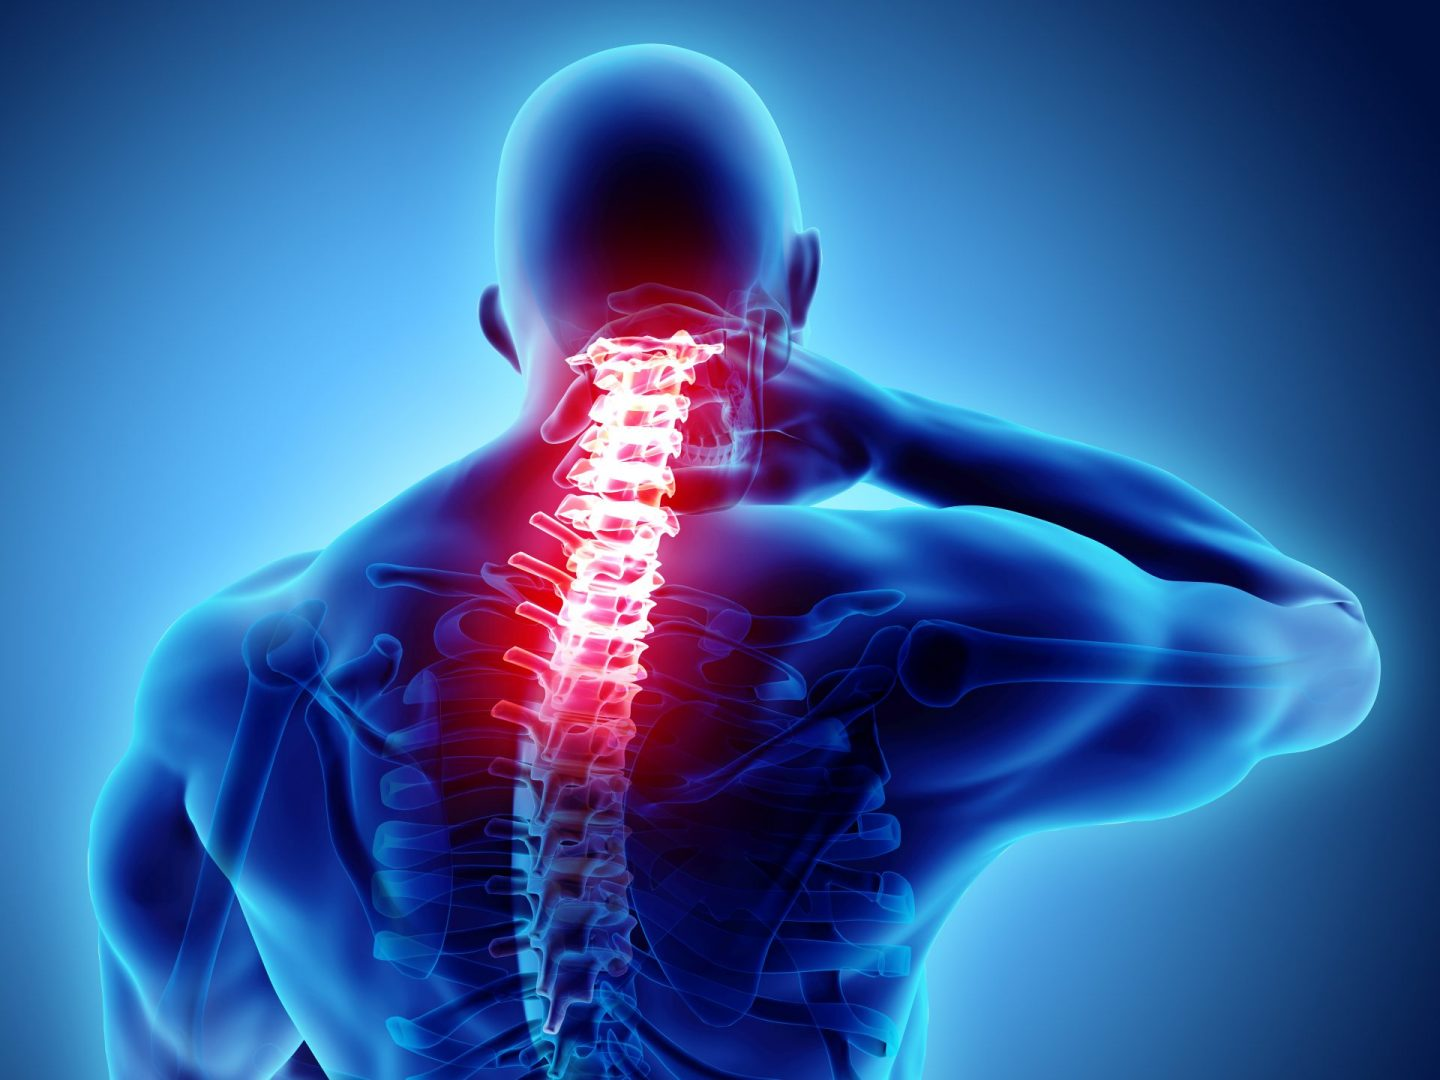 Cervical Radiculopathy A Real Pain in the Neck